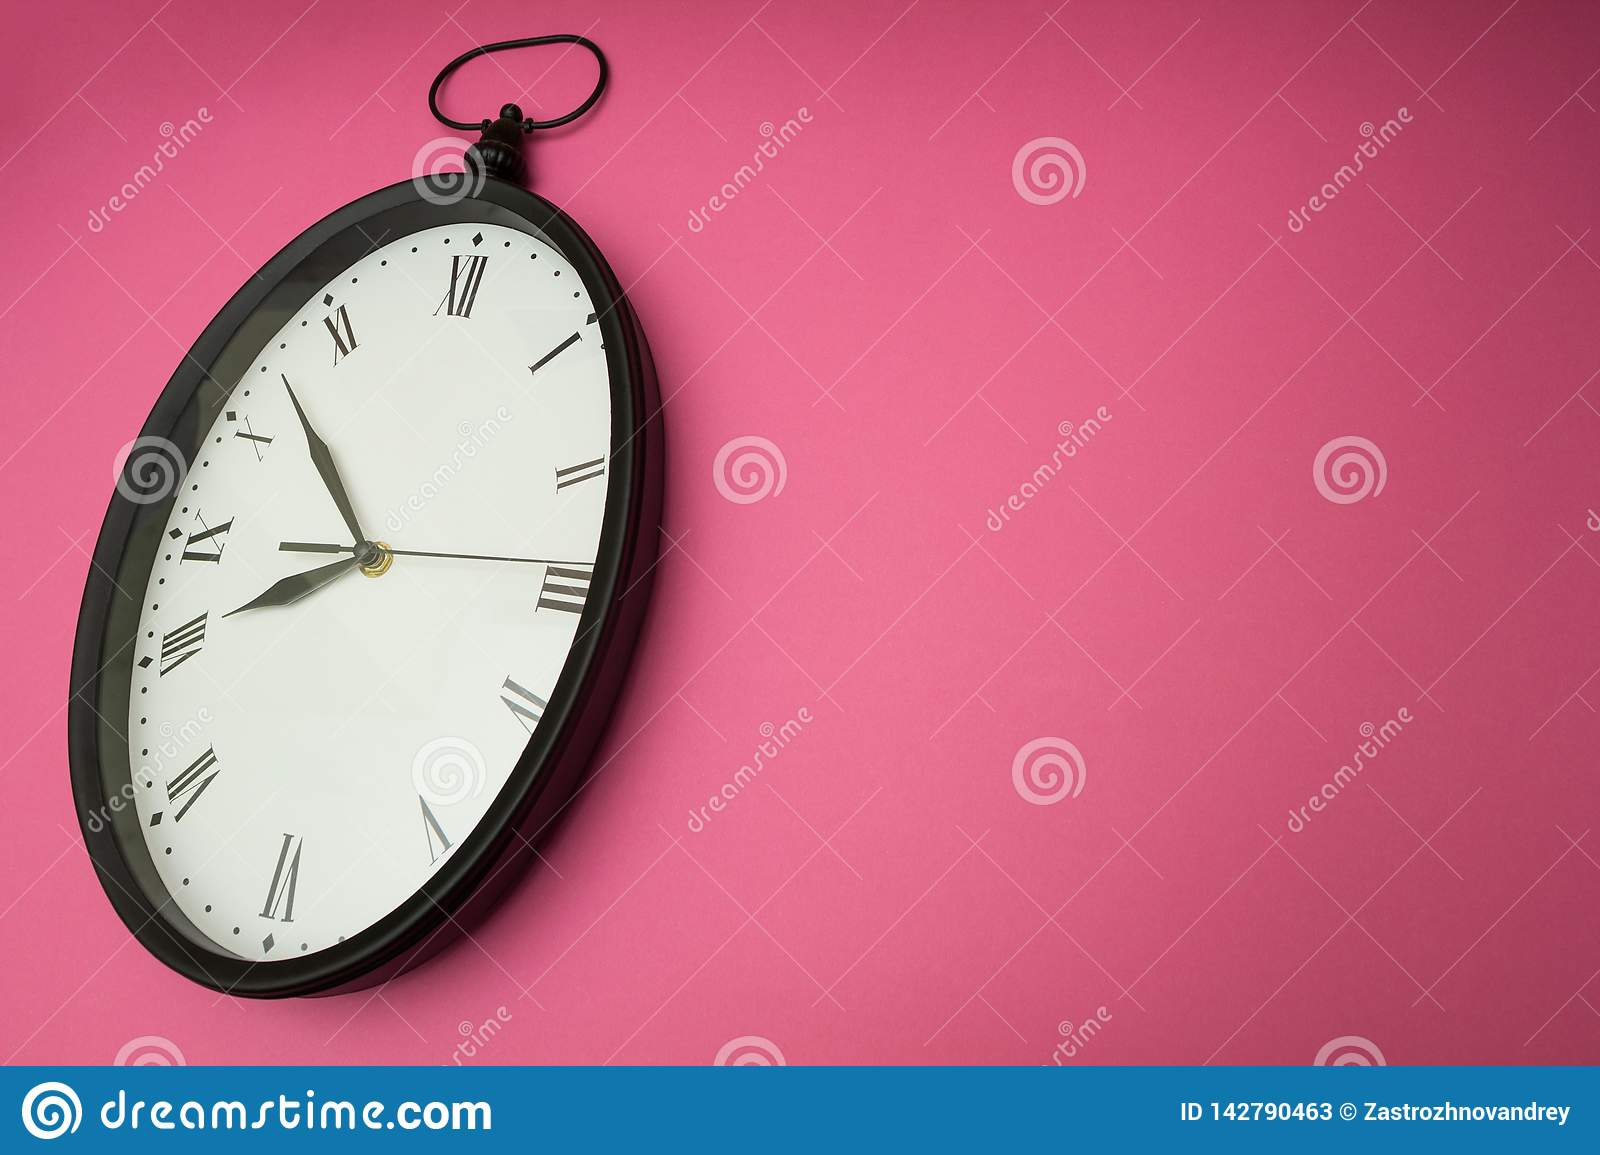 Old wall clock on a pink background